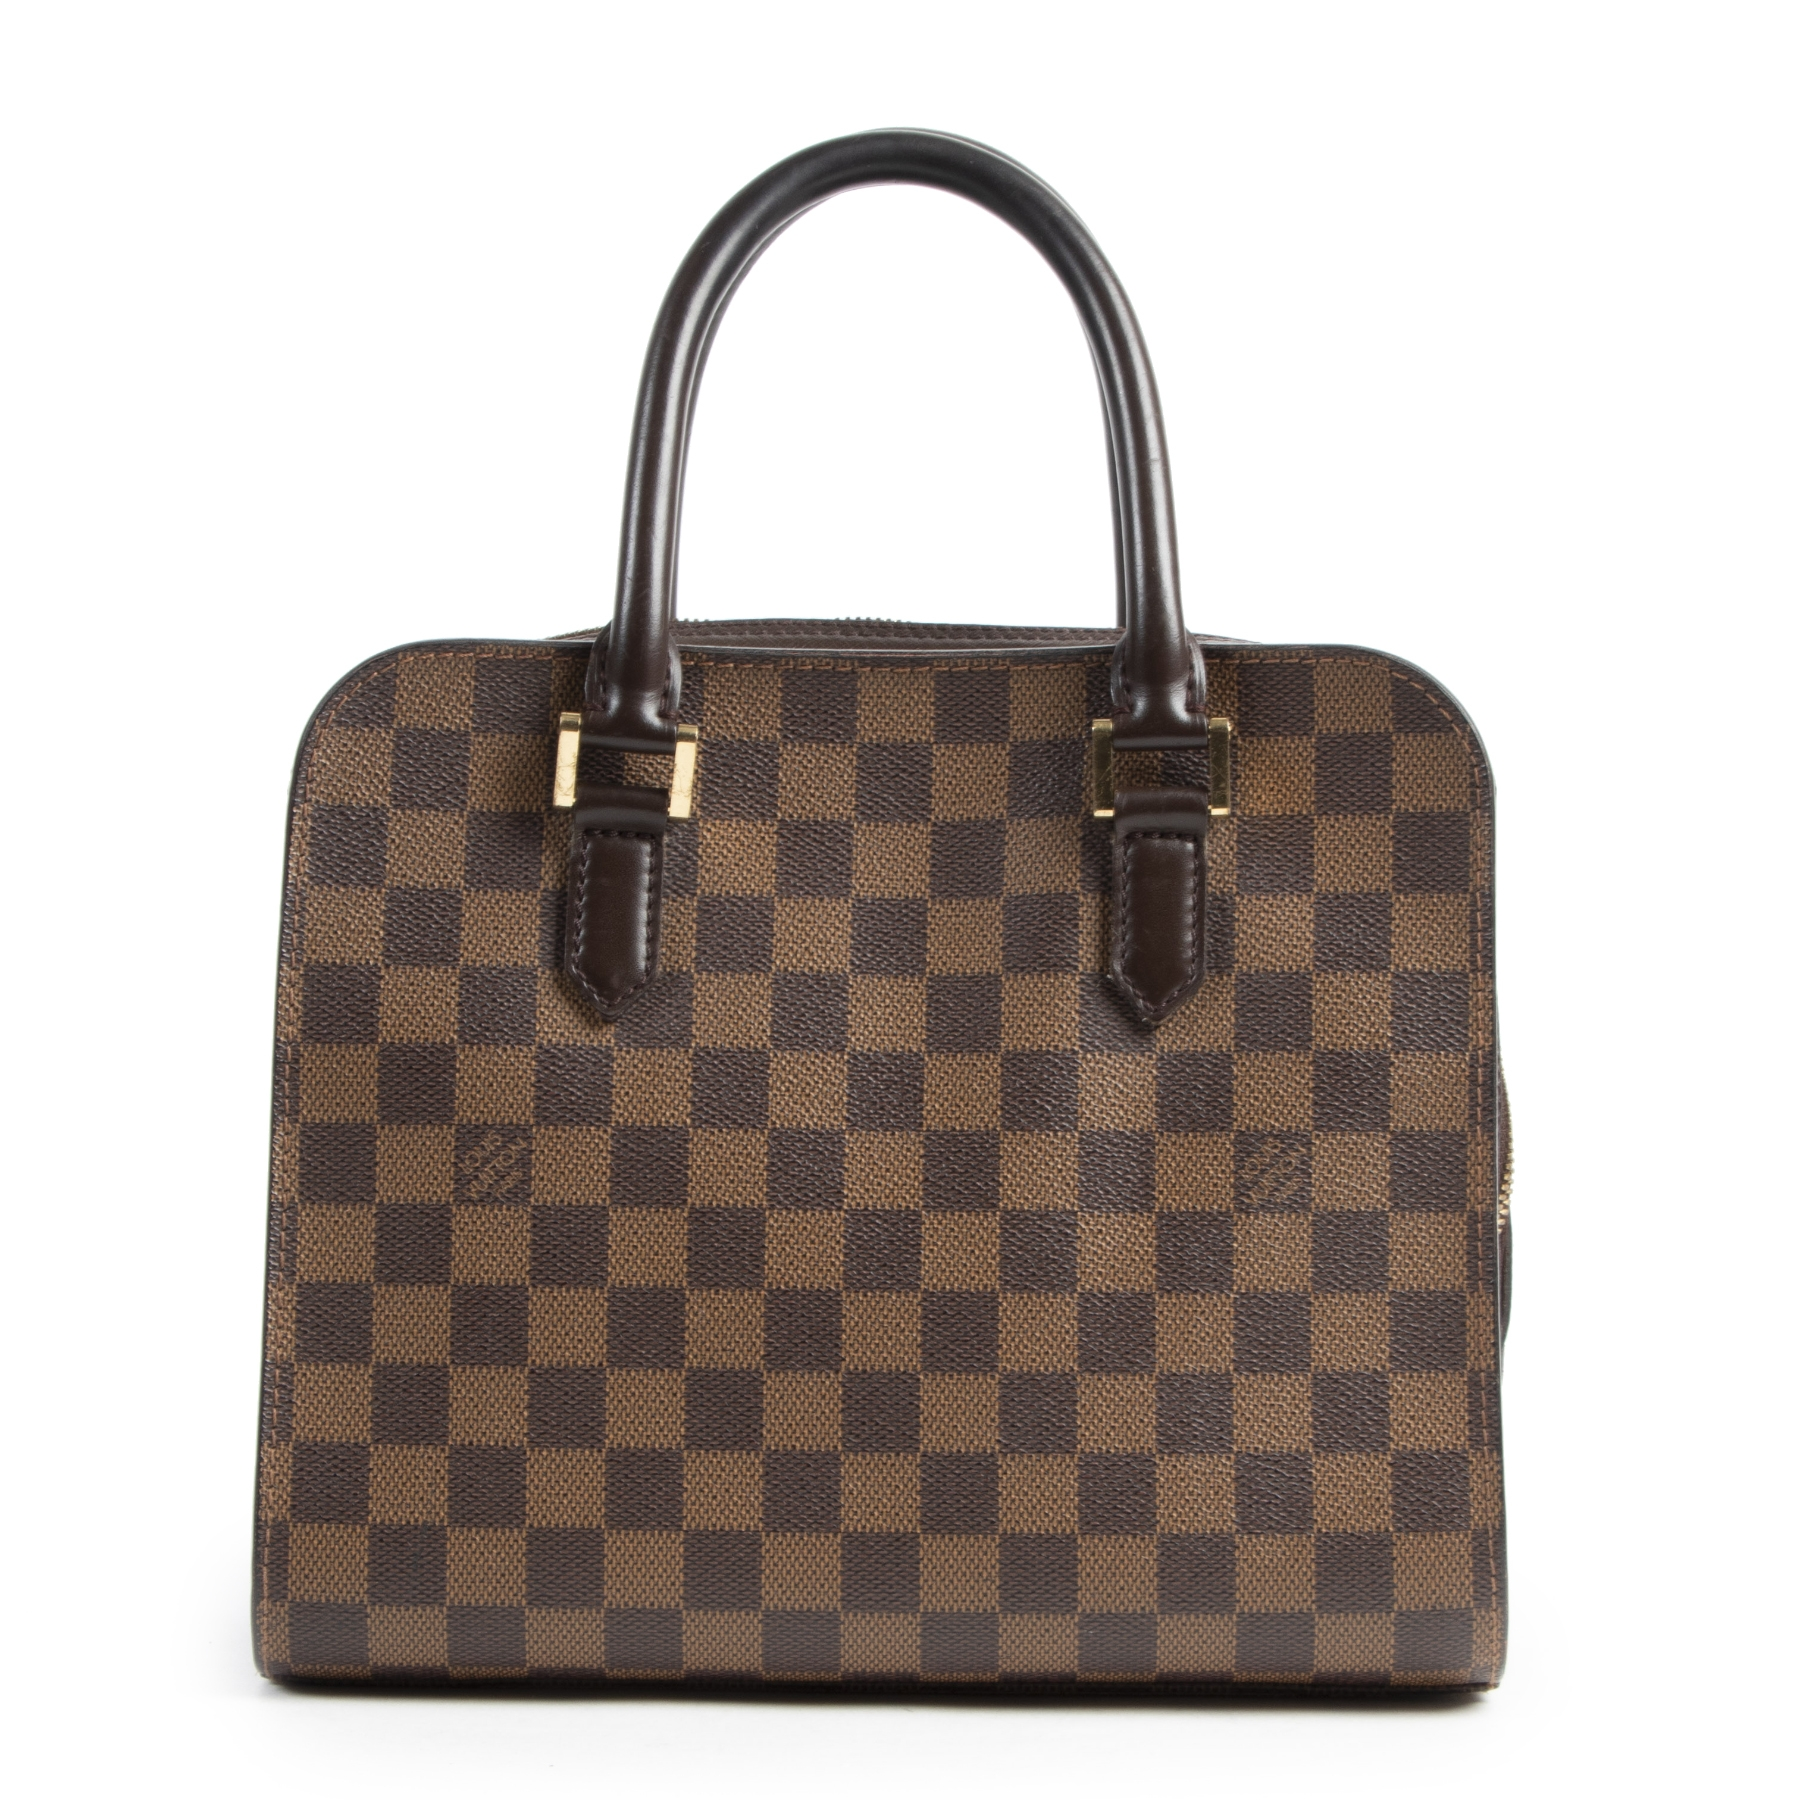 Authentic secondhand Louis Vuitton Damier Ebene Triana Top Handle Bag designer bags fashion luxury vintage webshop safe secure online shopping high end designer brands